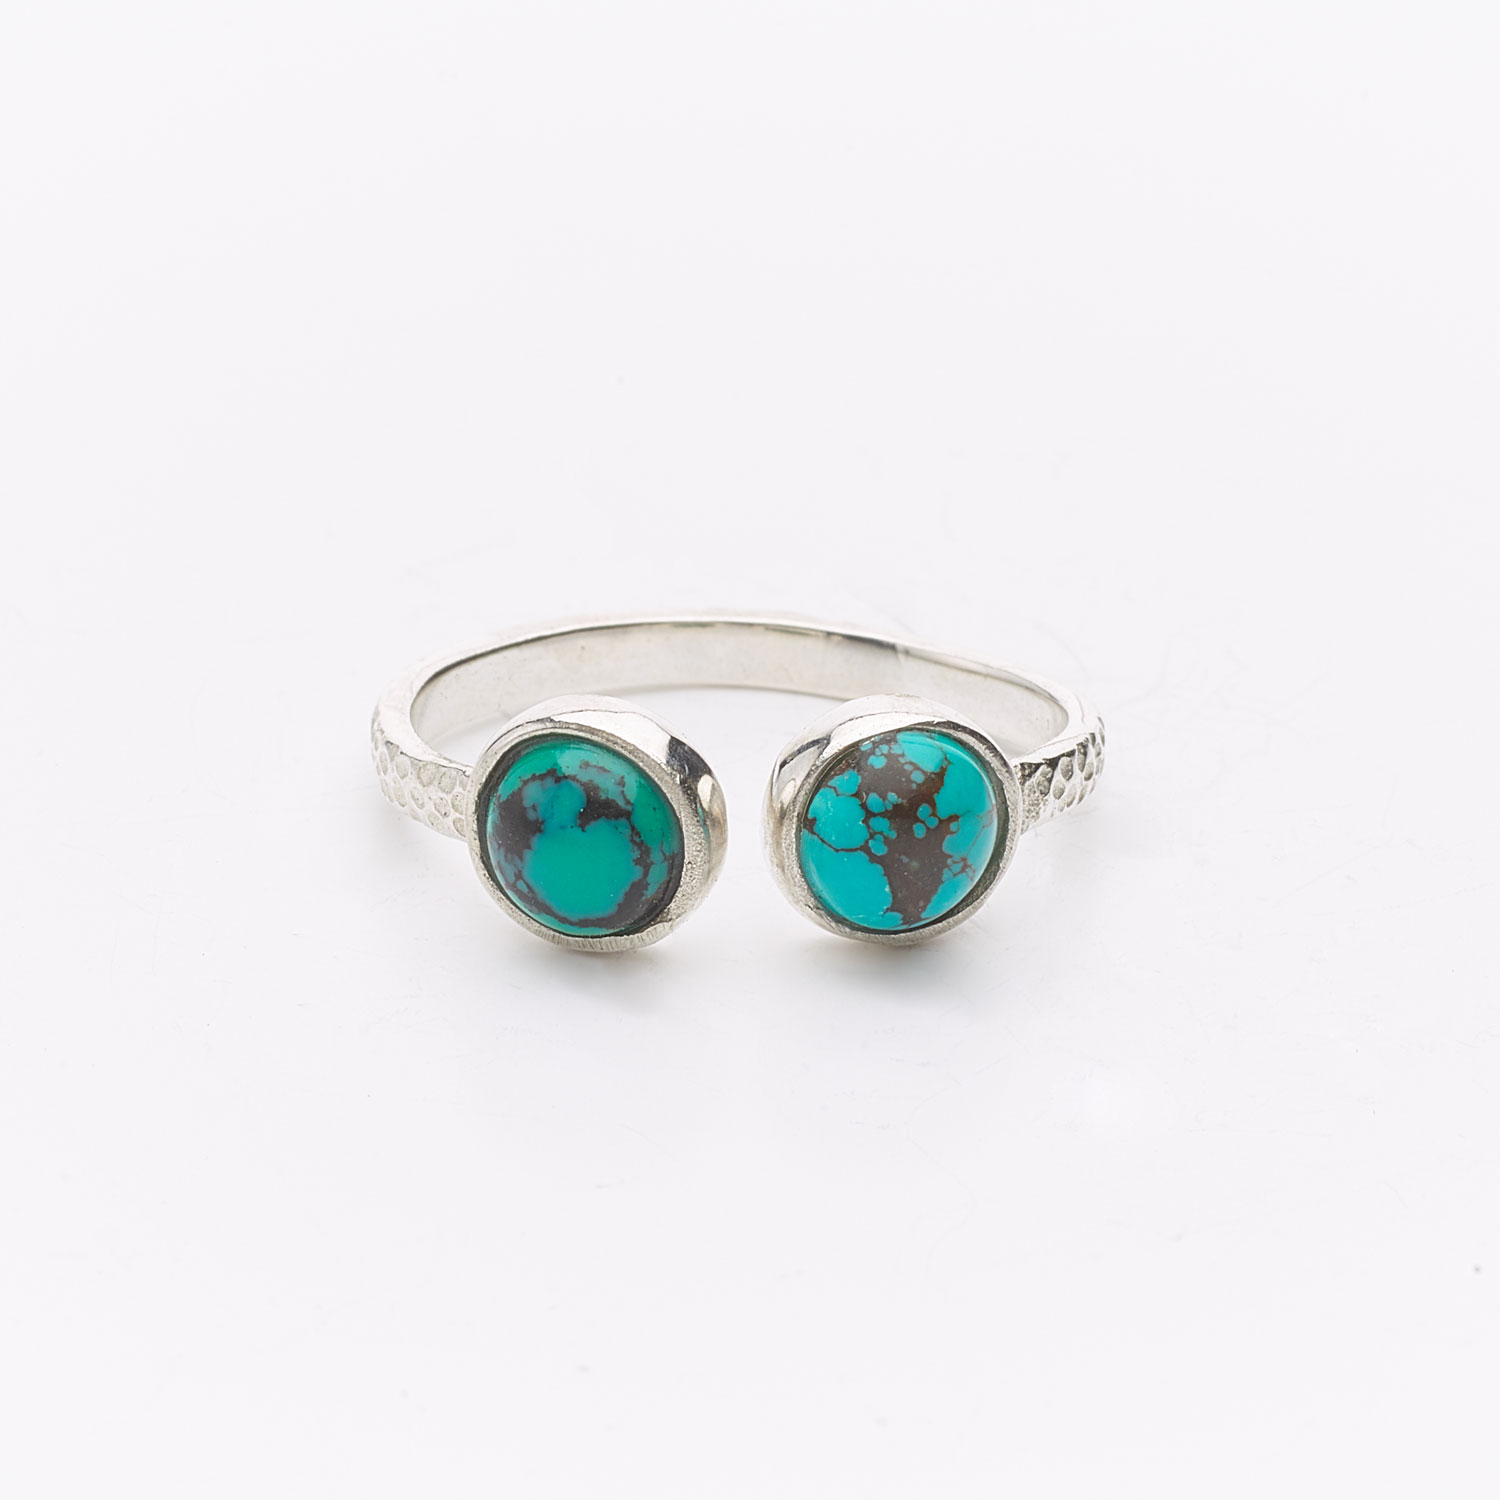 Fine silver ring with two Turquoise gemstones